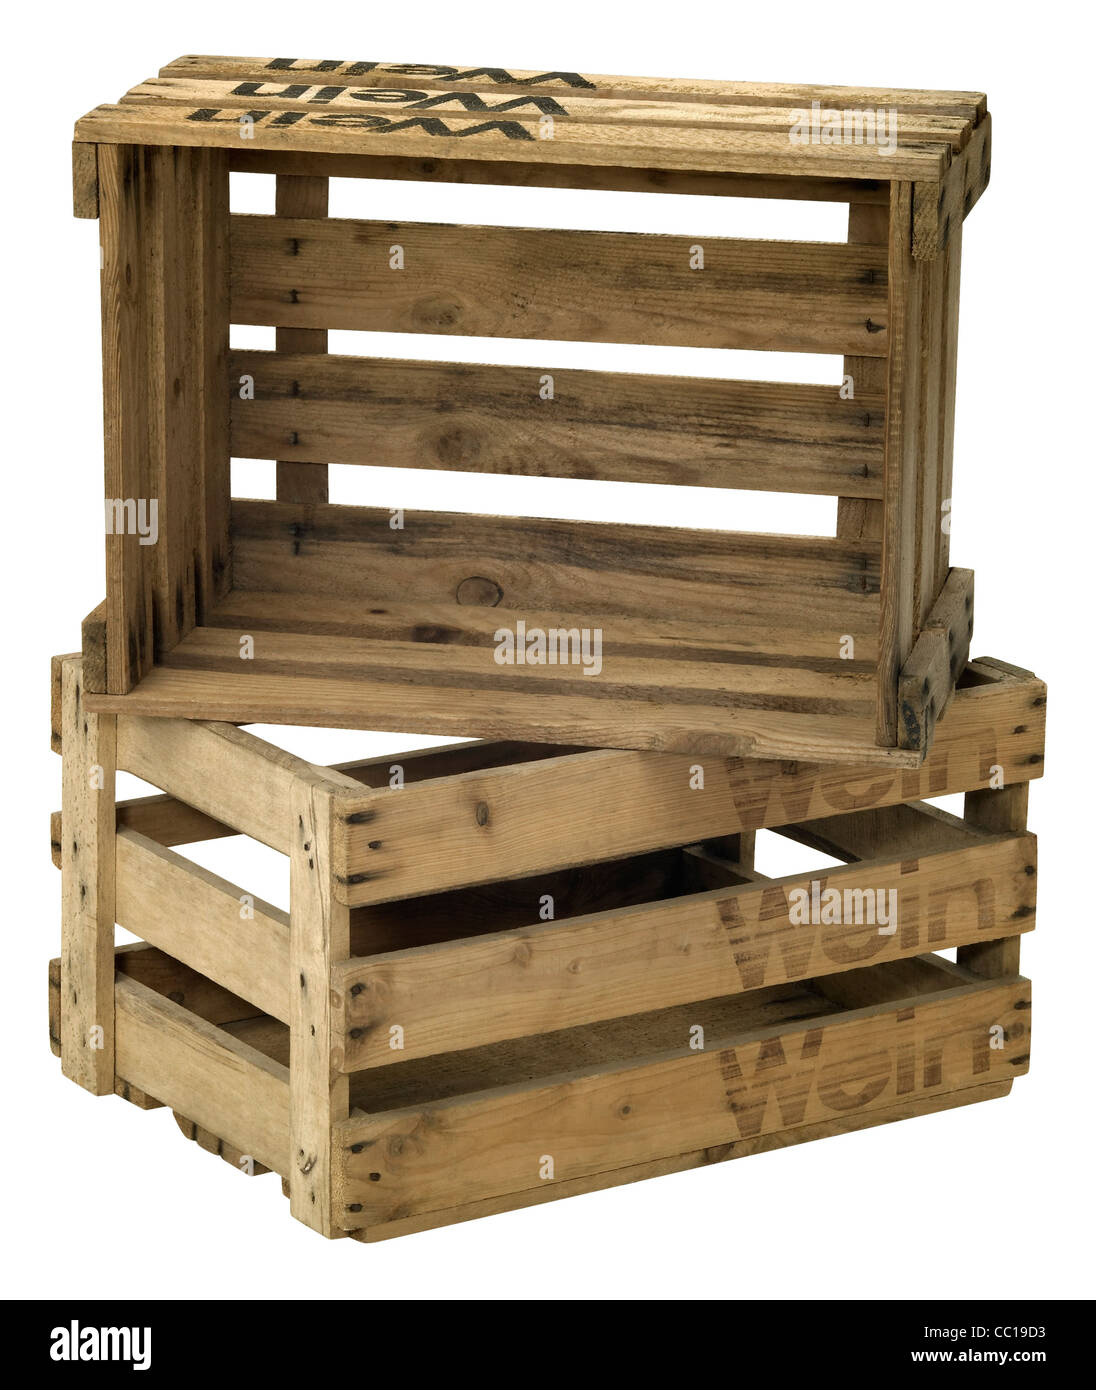 wooden cargo crate photos & wooden cargo crate images - alamy